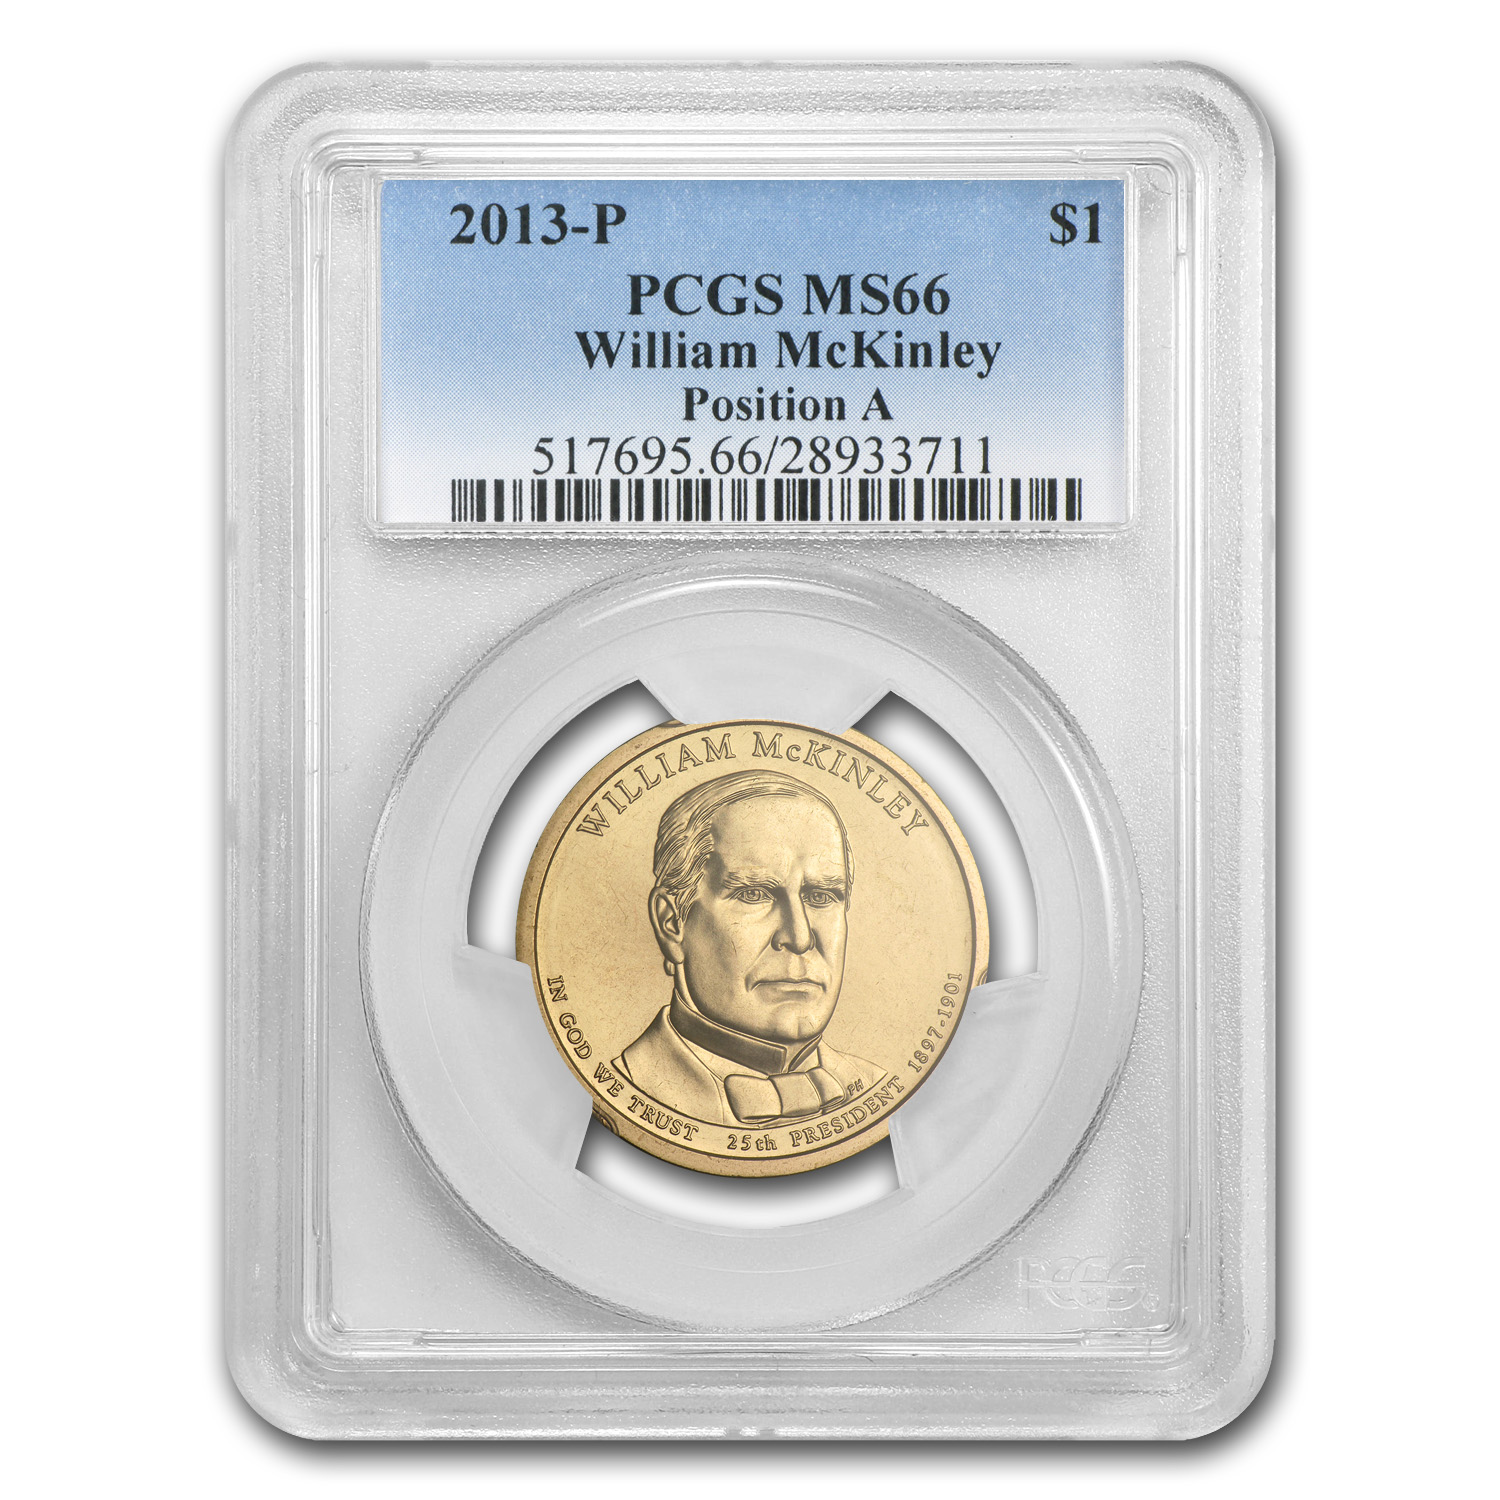 2013-P A Position William McKinley Presidential Dollar MS-66 PCGS